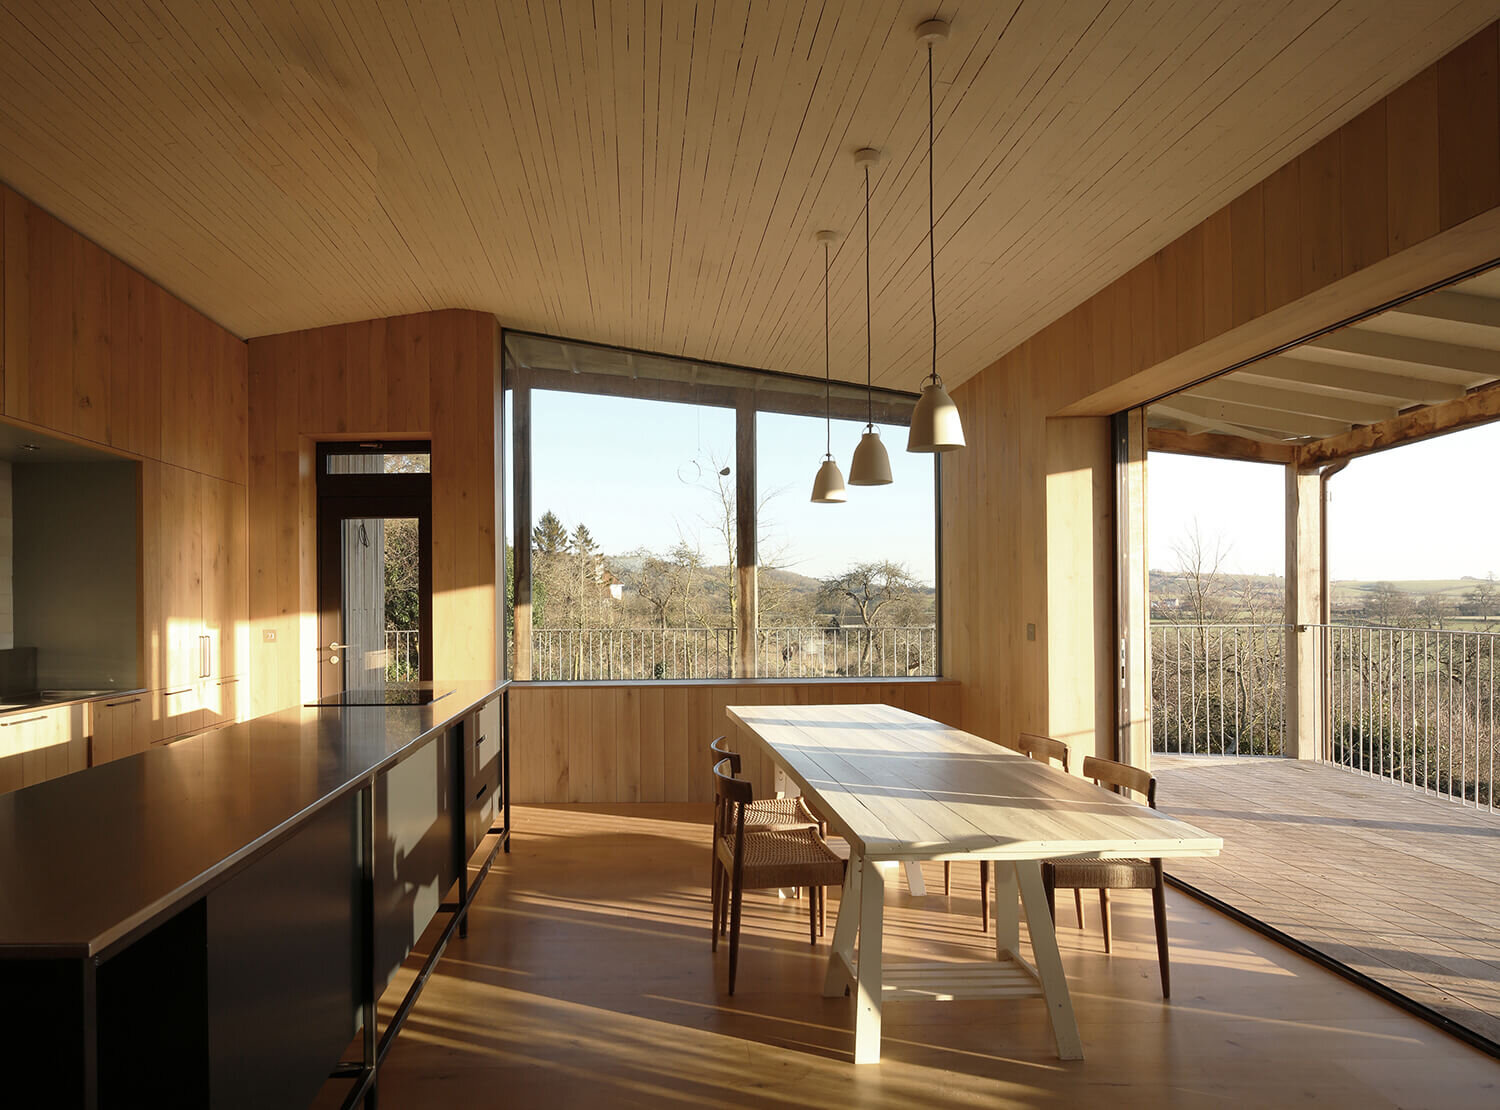 Dundon Passivhaus - large areas of south-facing glazing with solar shading